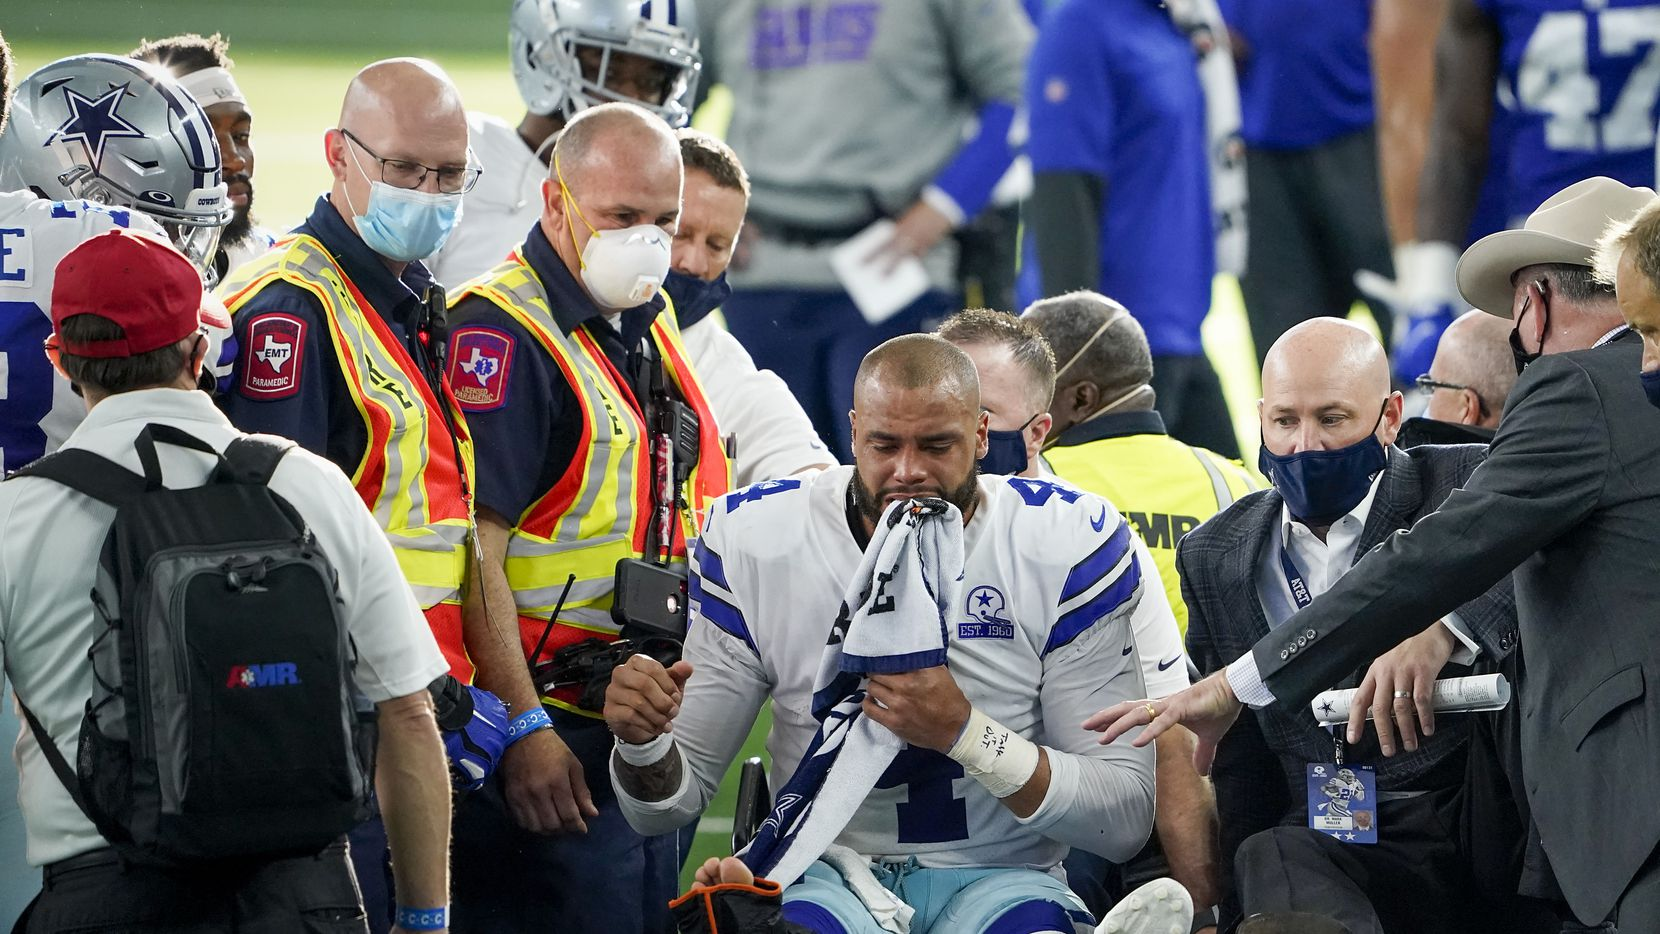 Dallas Cowboys quarterback Dak Prescott leaves the field on a cart after beig injured on a tackle by New York Giants cornerback Logan Ryan during the third quarter of an NFL football game at AT&T Stadium on Sunday, Oct. 11, 2020, in Arlington. Prescott was injured o the play when Ryan came down on his right leg and left the game.